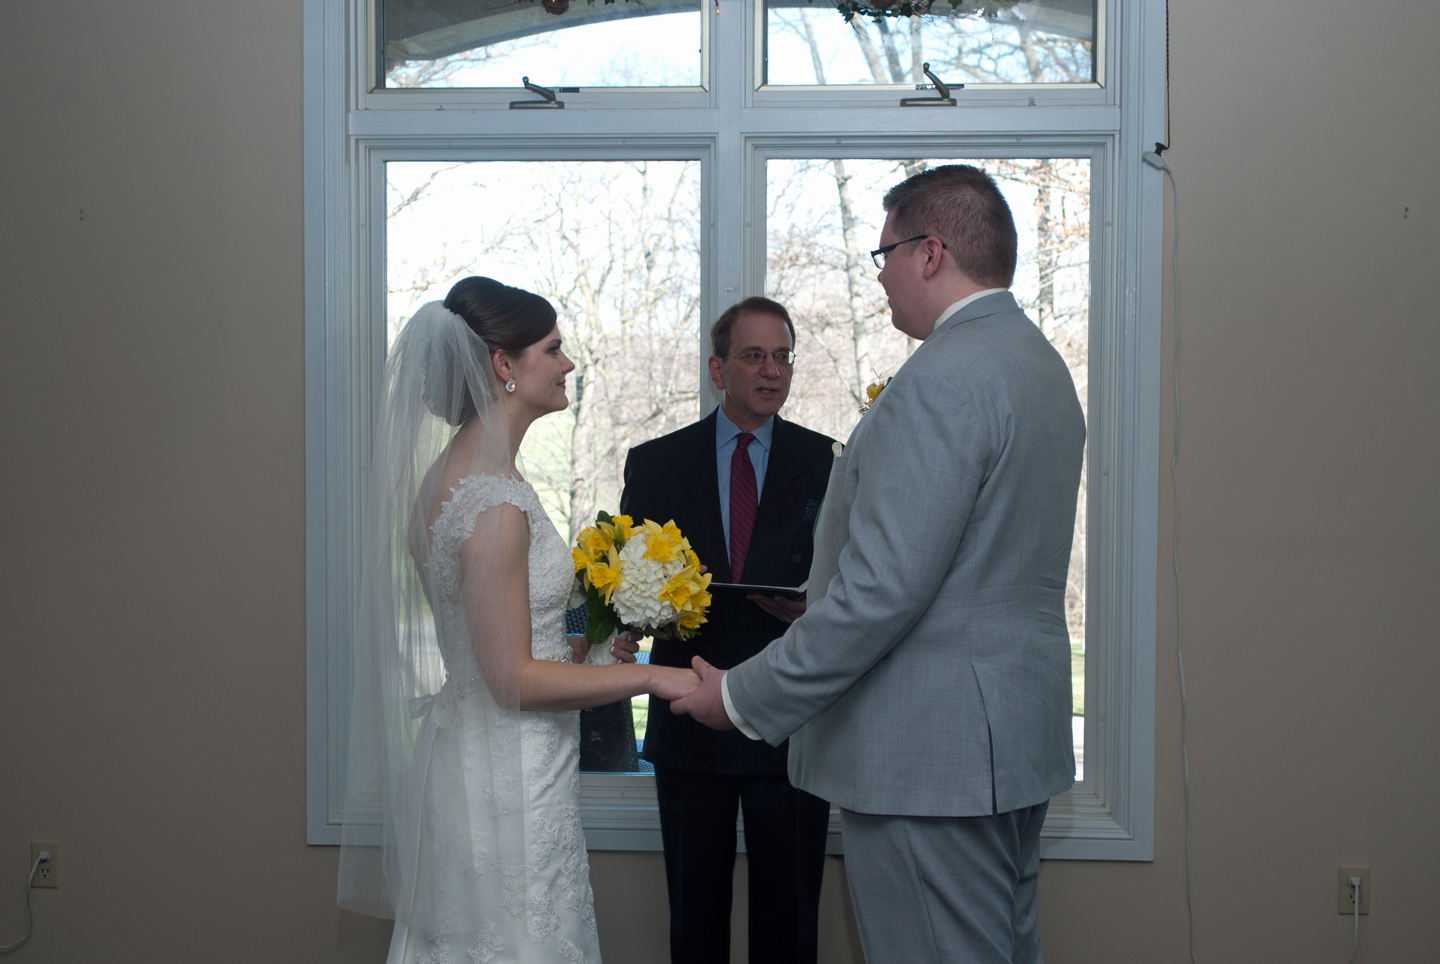 Barry Bradford with the Bride and Groom Officiating the Wedding